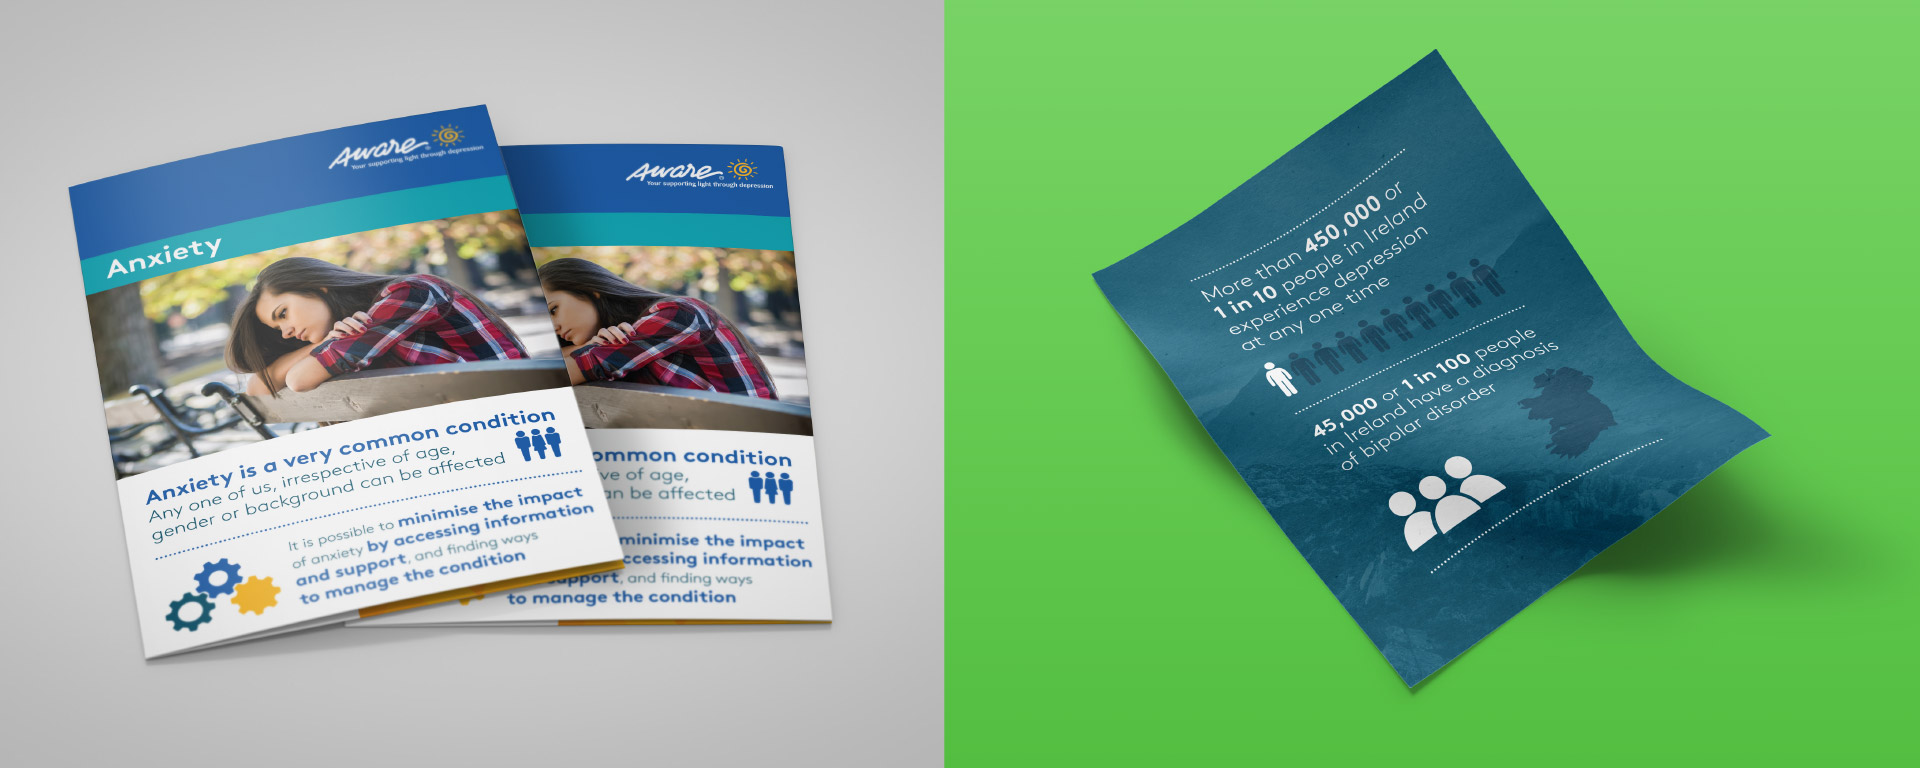 Aware leaflets and infographic designs.